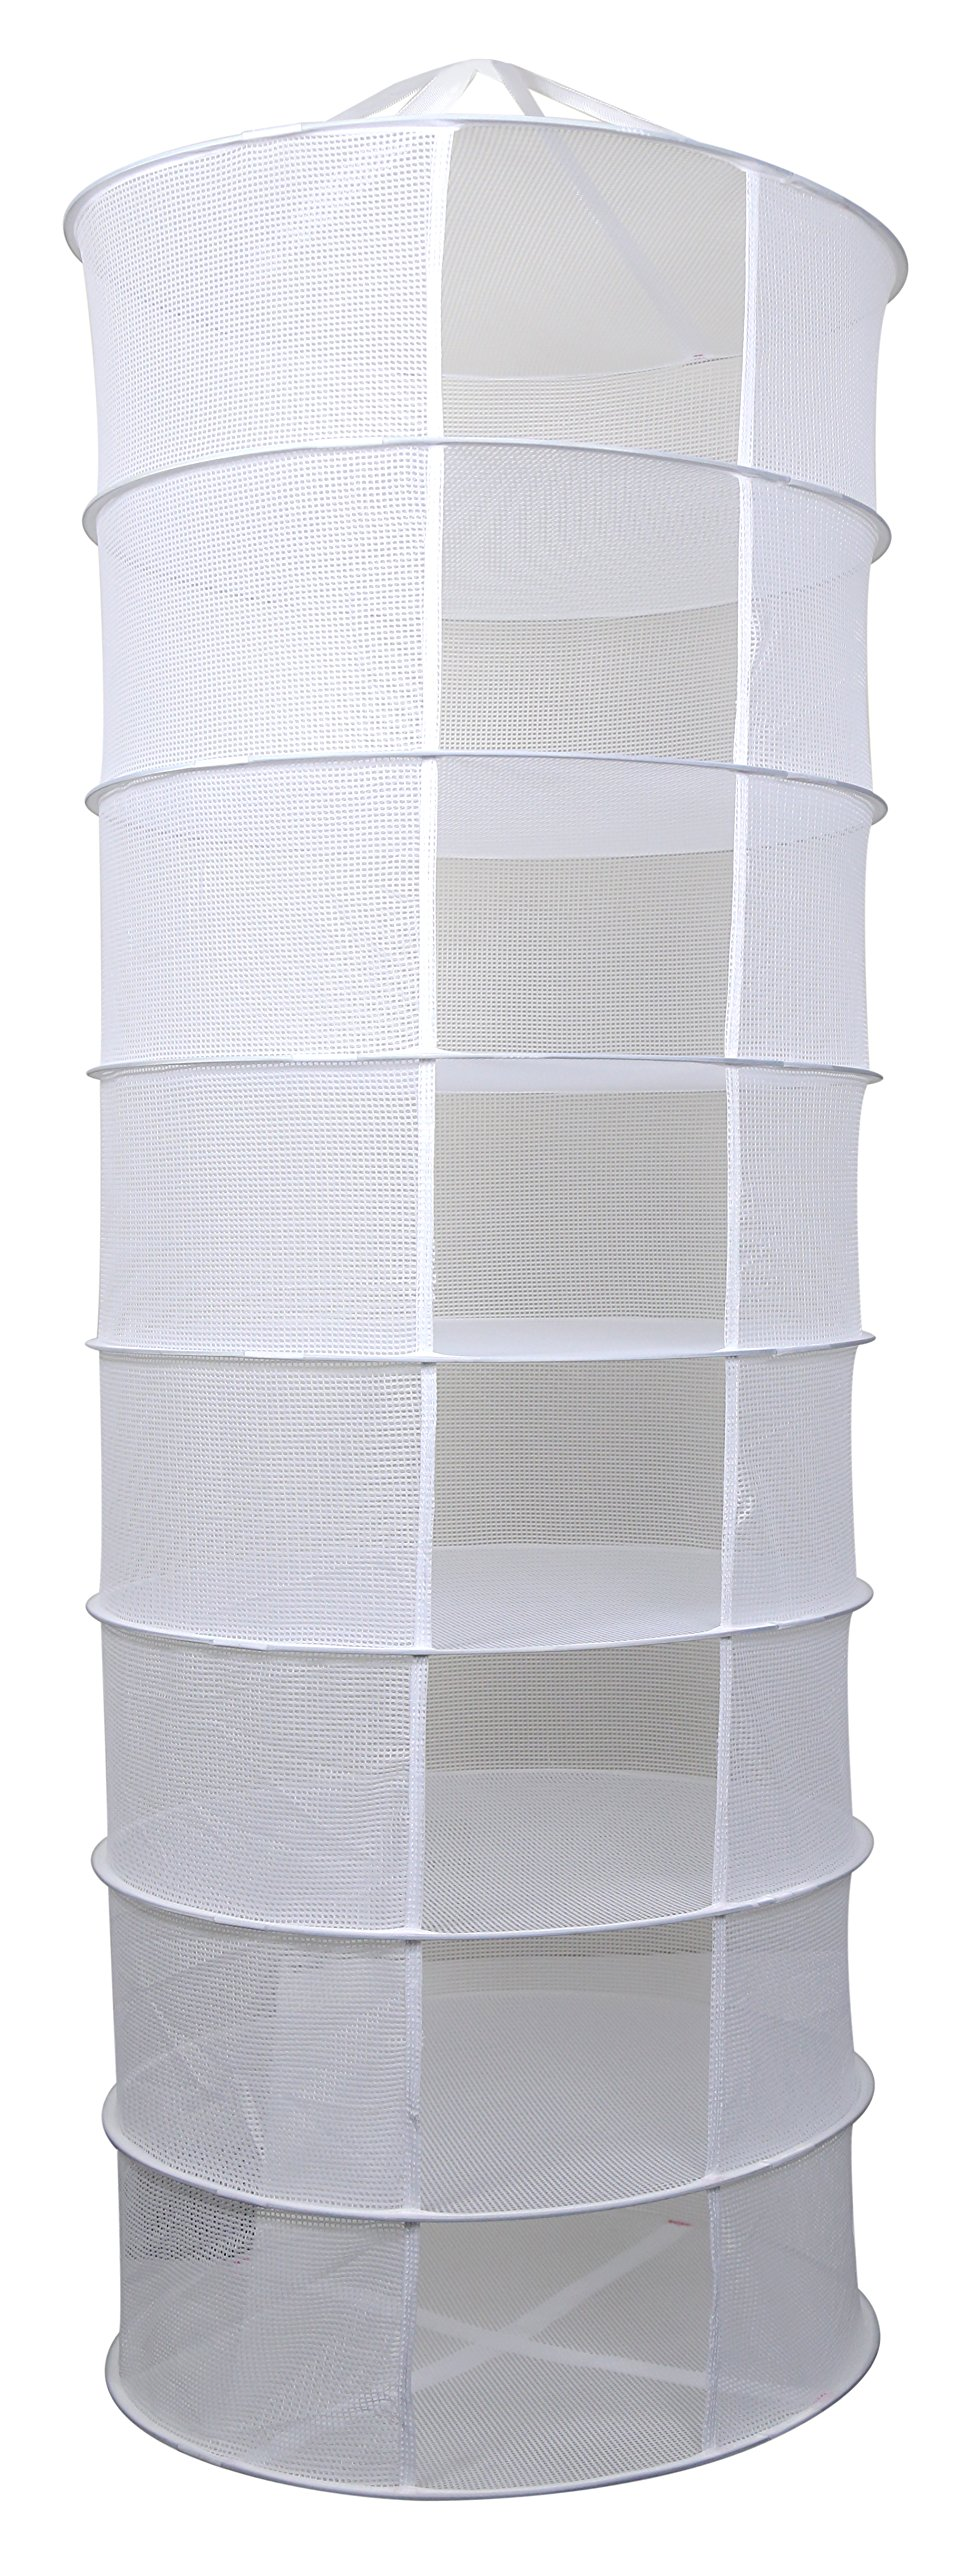 Apollo Horticulture 2ft 8 Layer Collapsible Mesh Hydroponic Drying Dry Rack Net by Apollo Horticulture